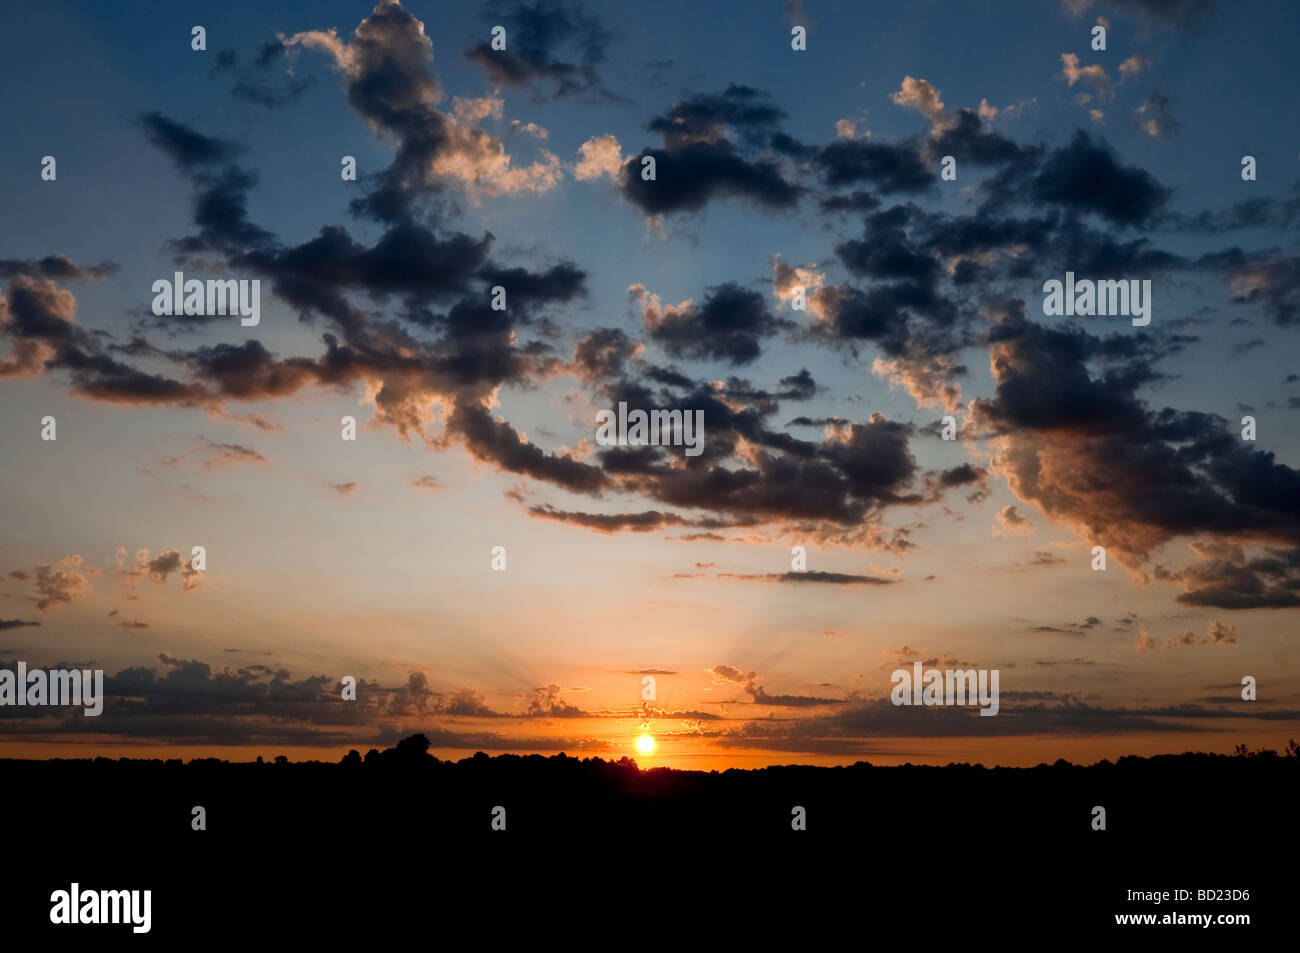 Dawn / sunrise / first light with Cumulus and Altocumulus clouds - Indre-et-Loire, France. Stock Photo